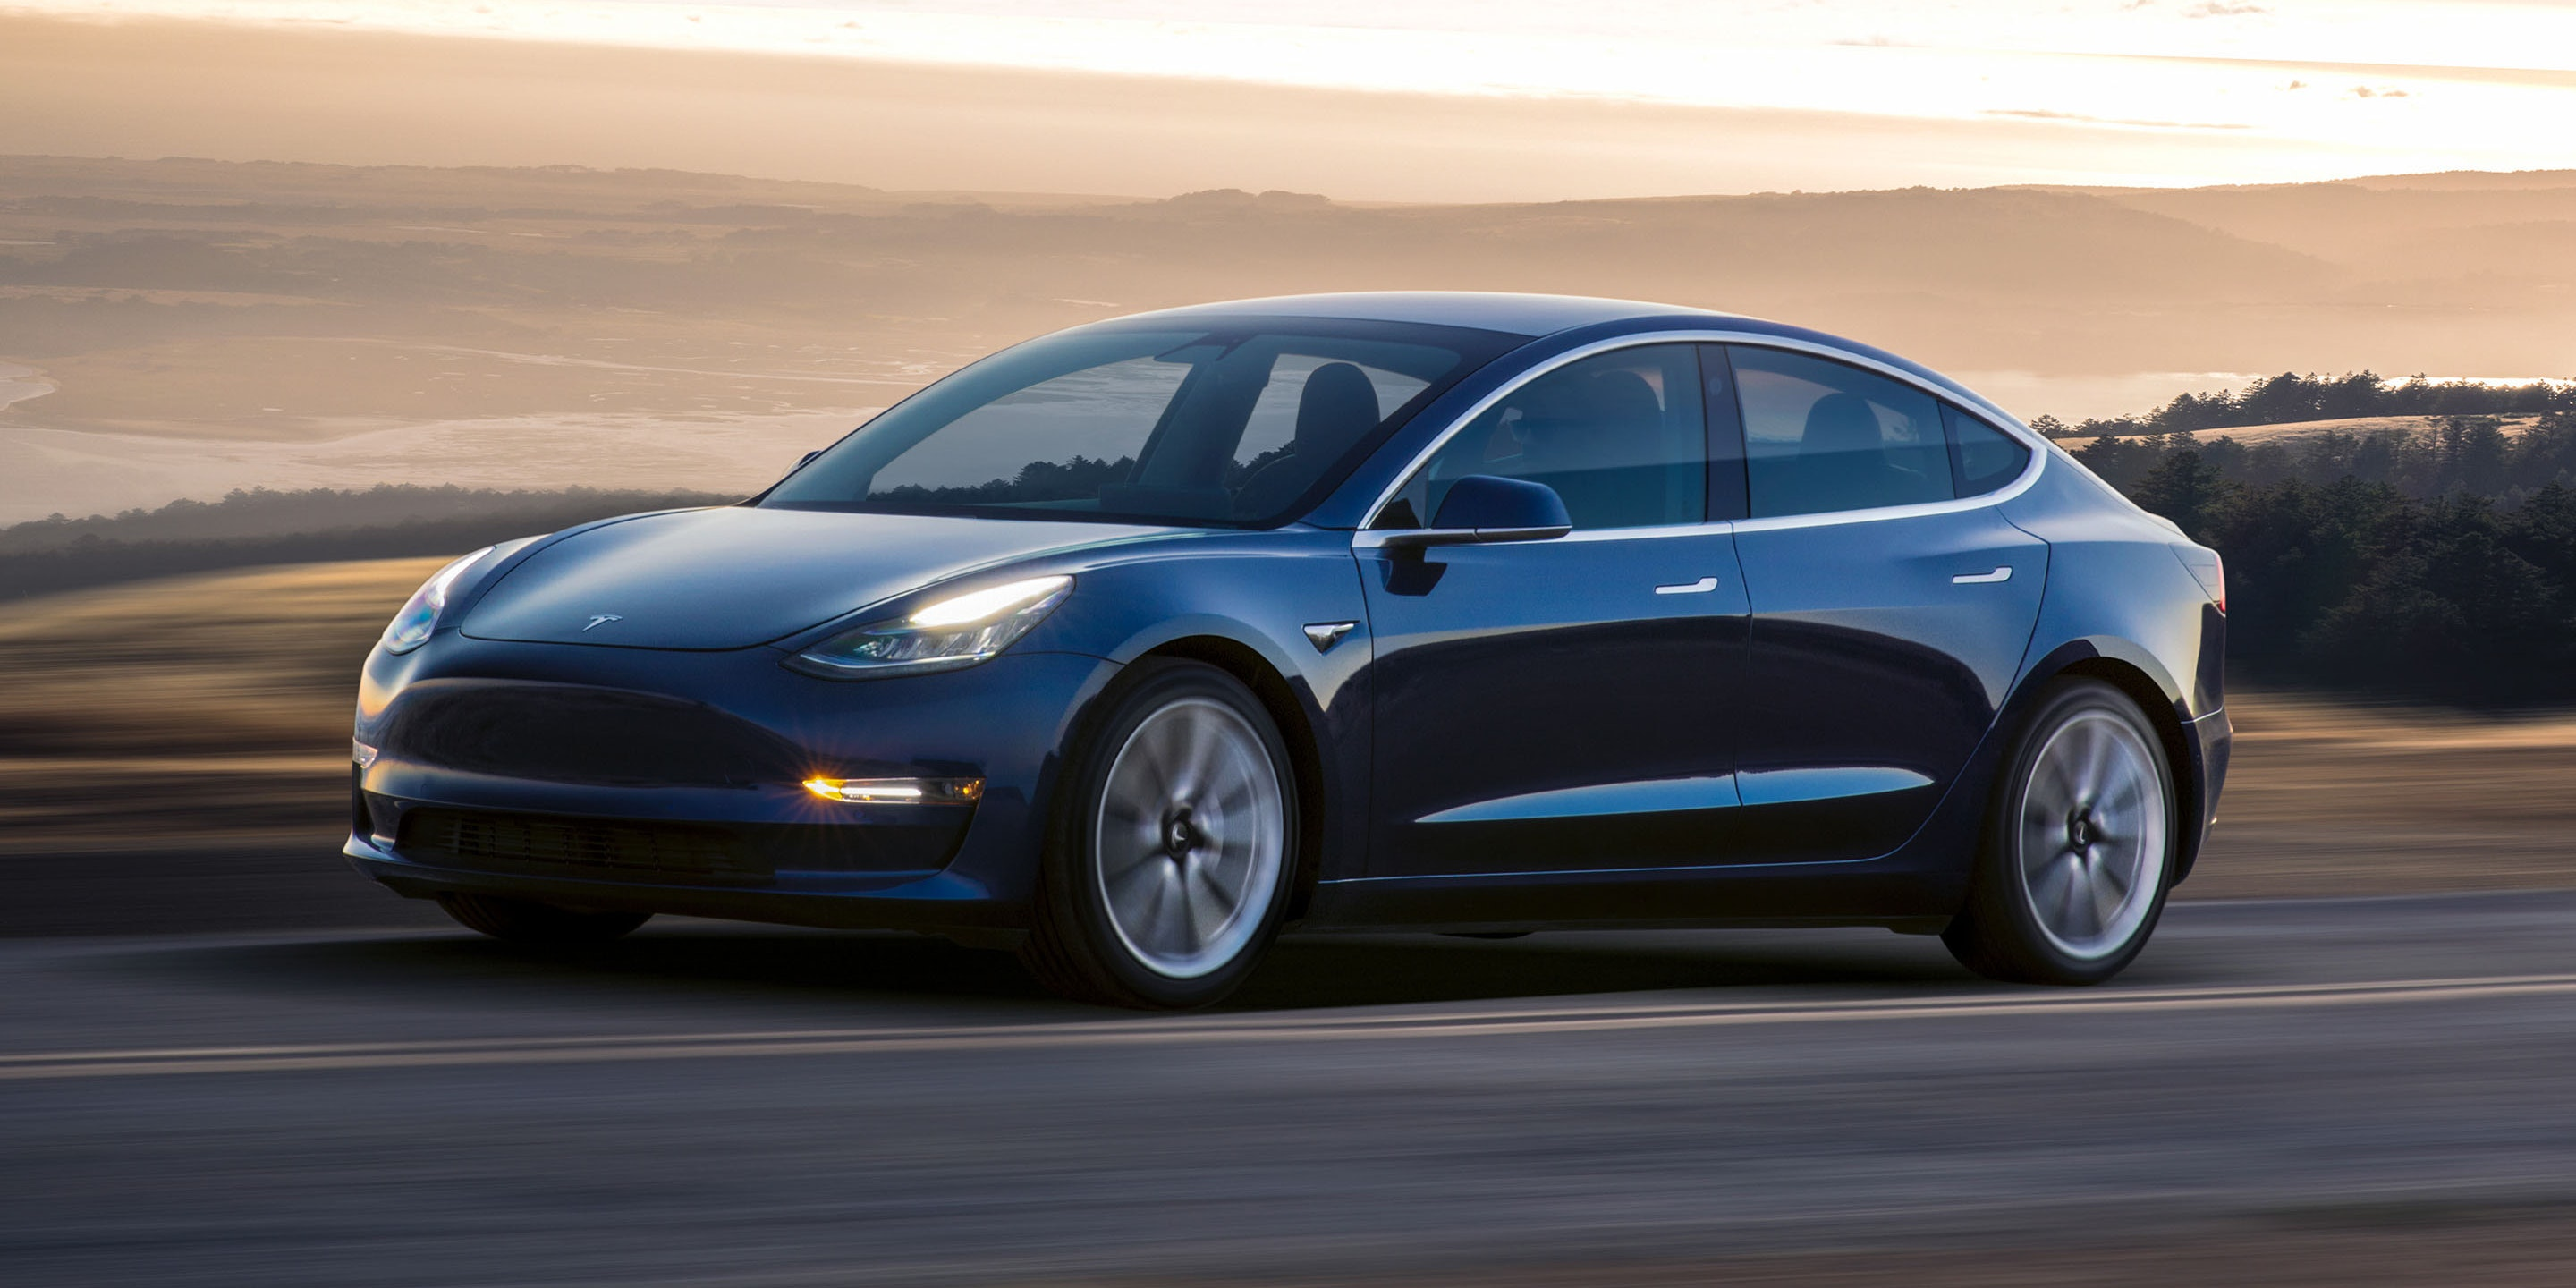 Tesla Owners and Neil DeGrasse Tyson Sound Off on the Most Needed Upgrades